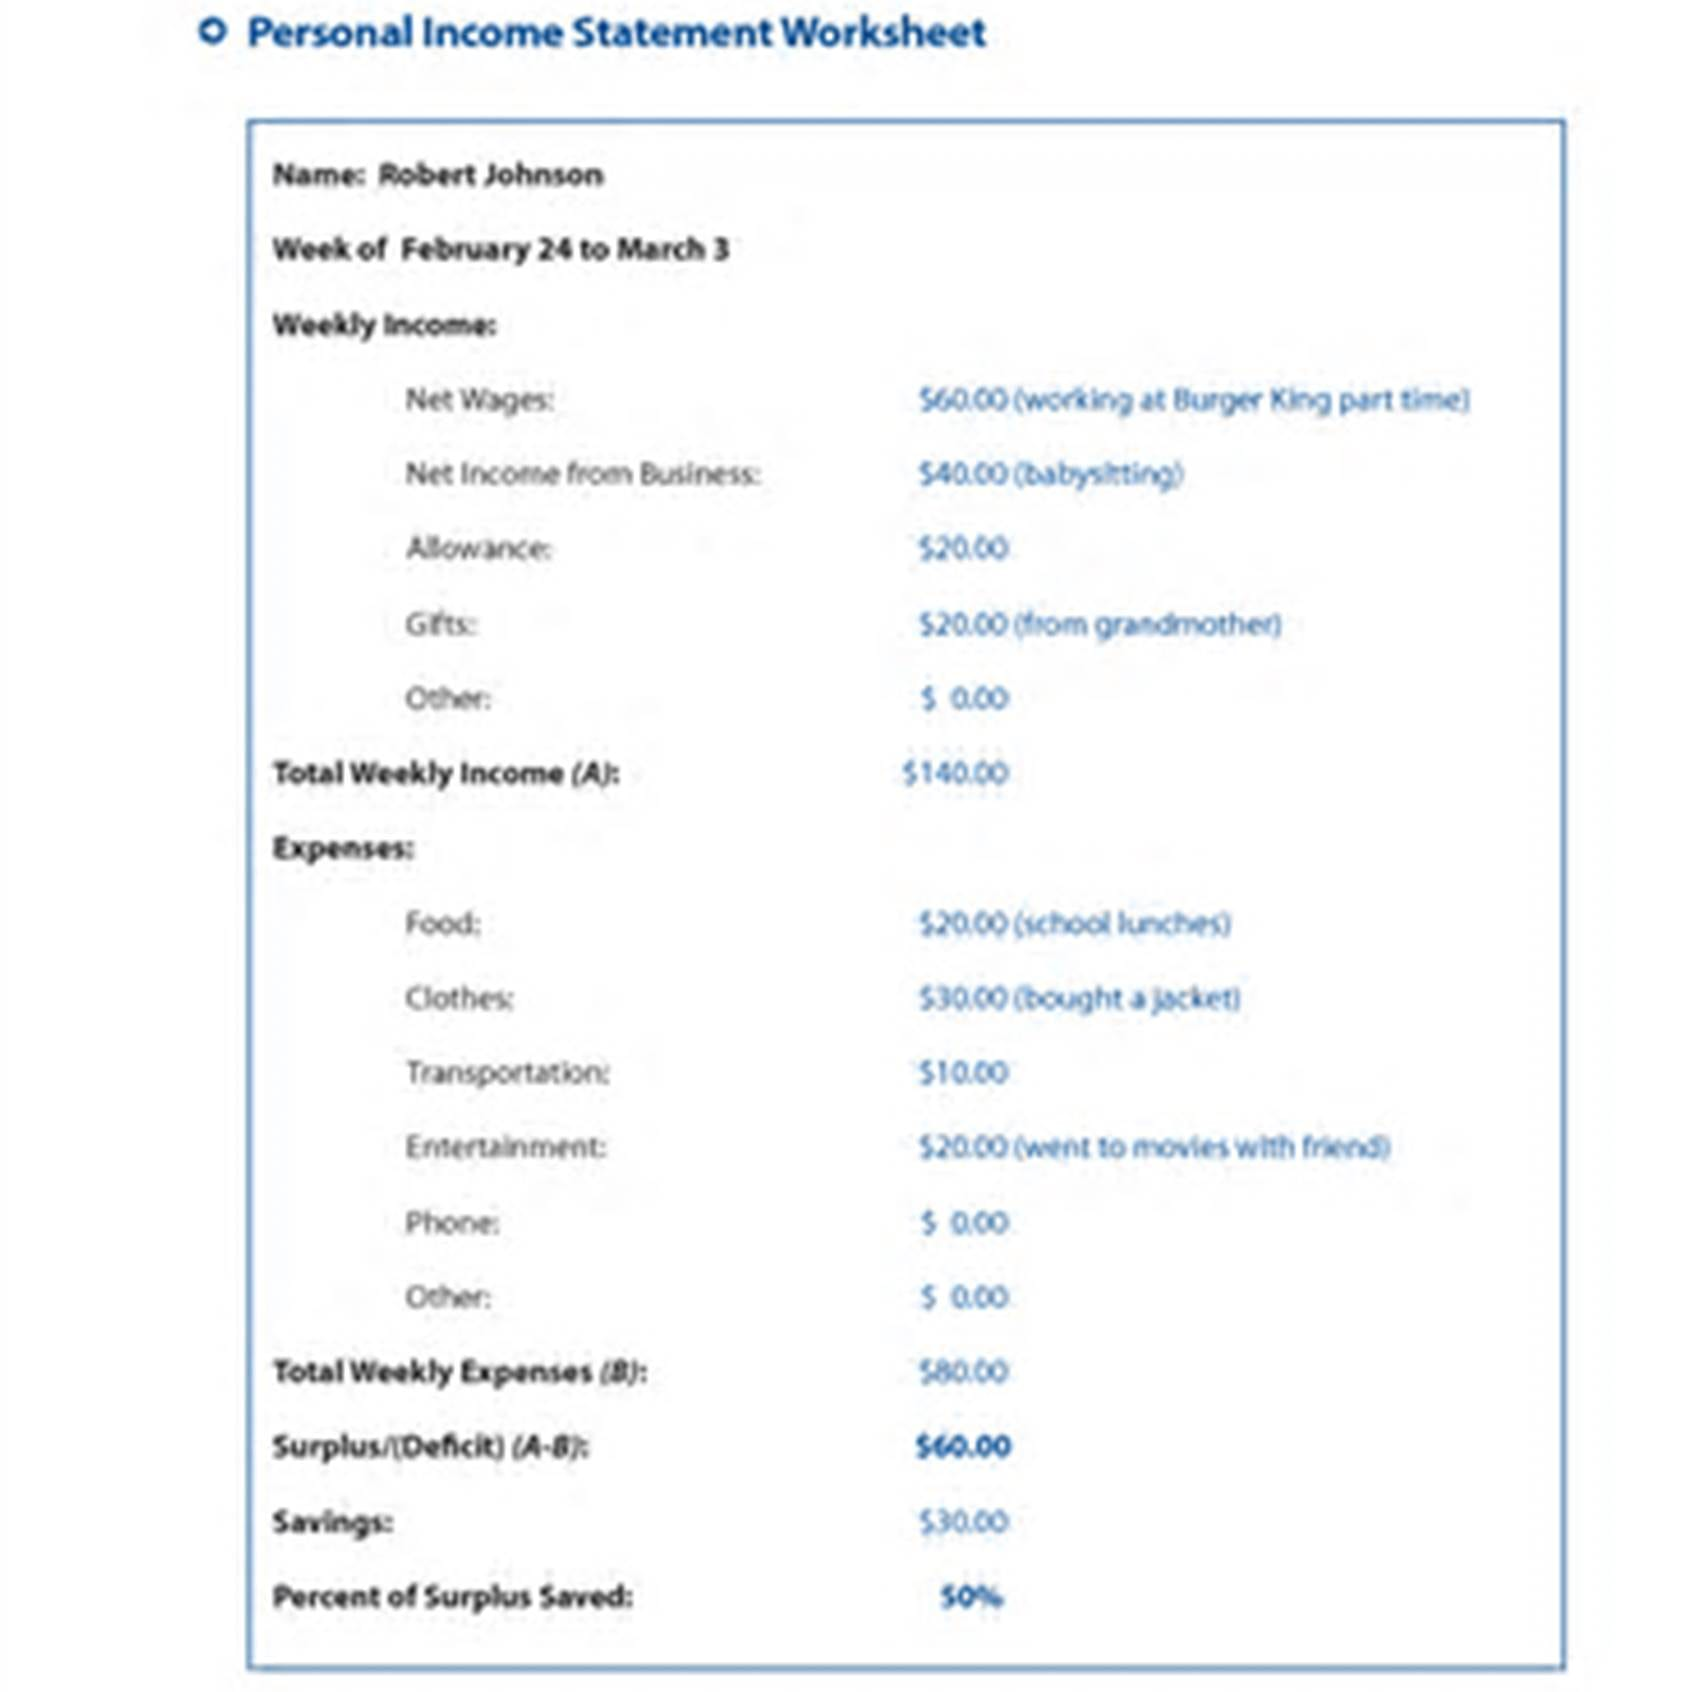 Retained Earnings Worksheet Printable Income And Expense Form Income Statement Trial Balance Income Statement Worksheet Excel Cash Flow Worksheet Worksheet Income Statement Balance Sheet Income Statement Worksheet Example